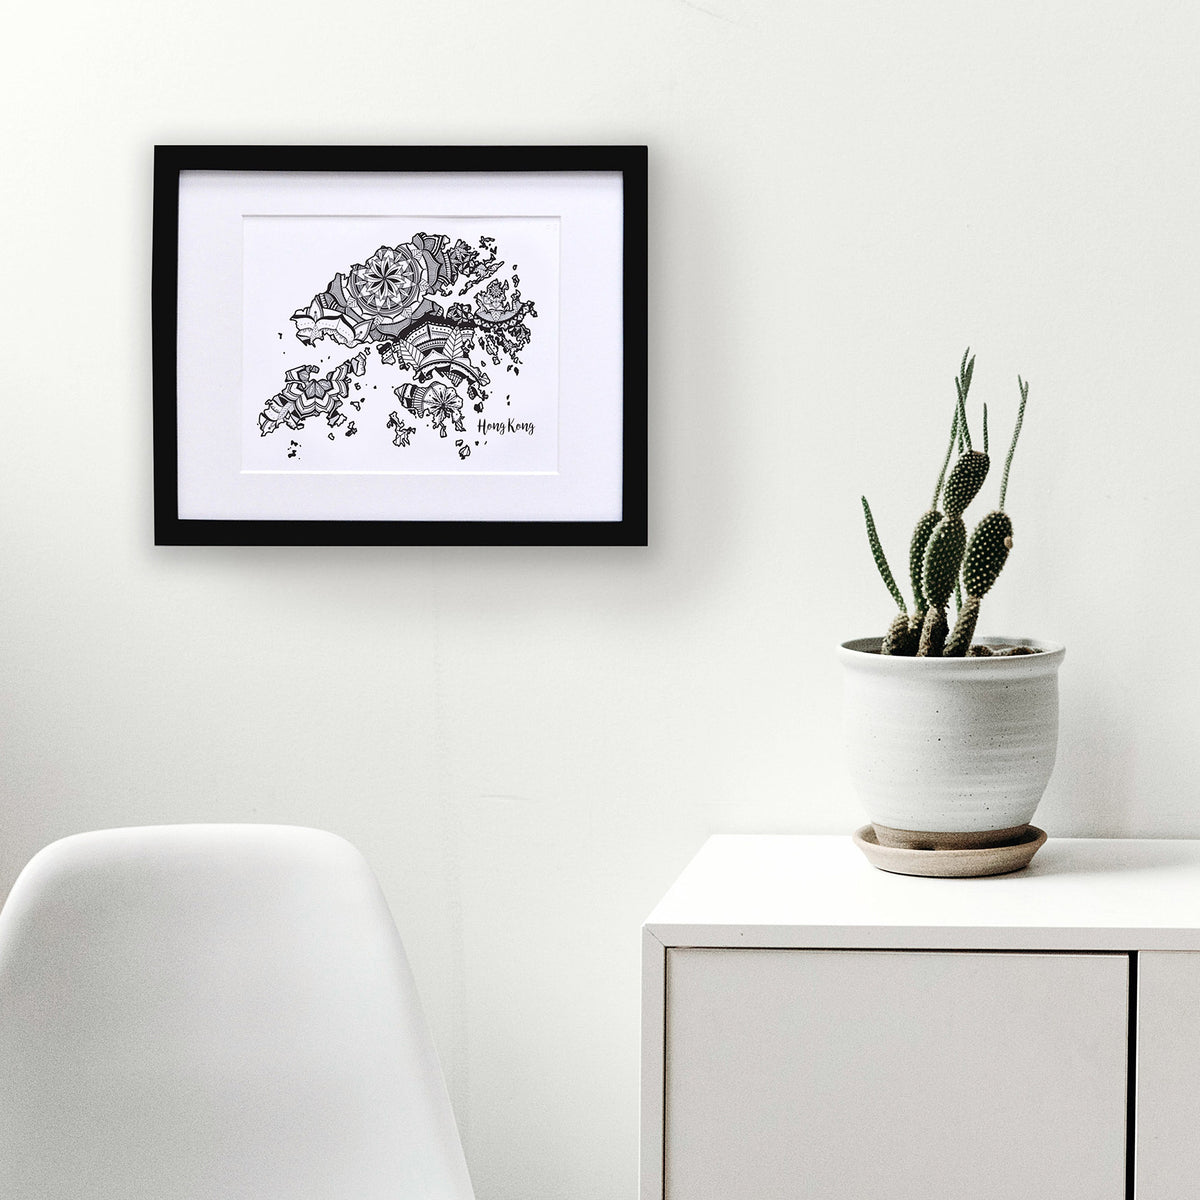 Map of Hong Kong | Map Art | Travel Gift Ideas | Hong Kong City Map | Map Wall Art | Hong Kong Map